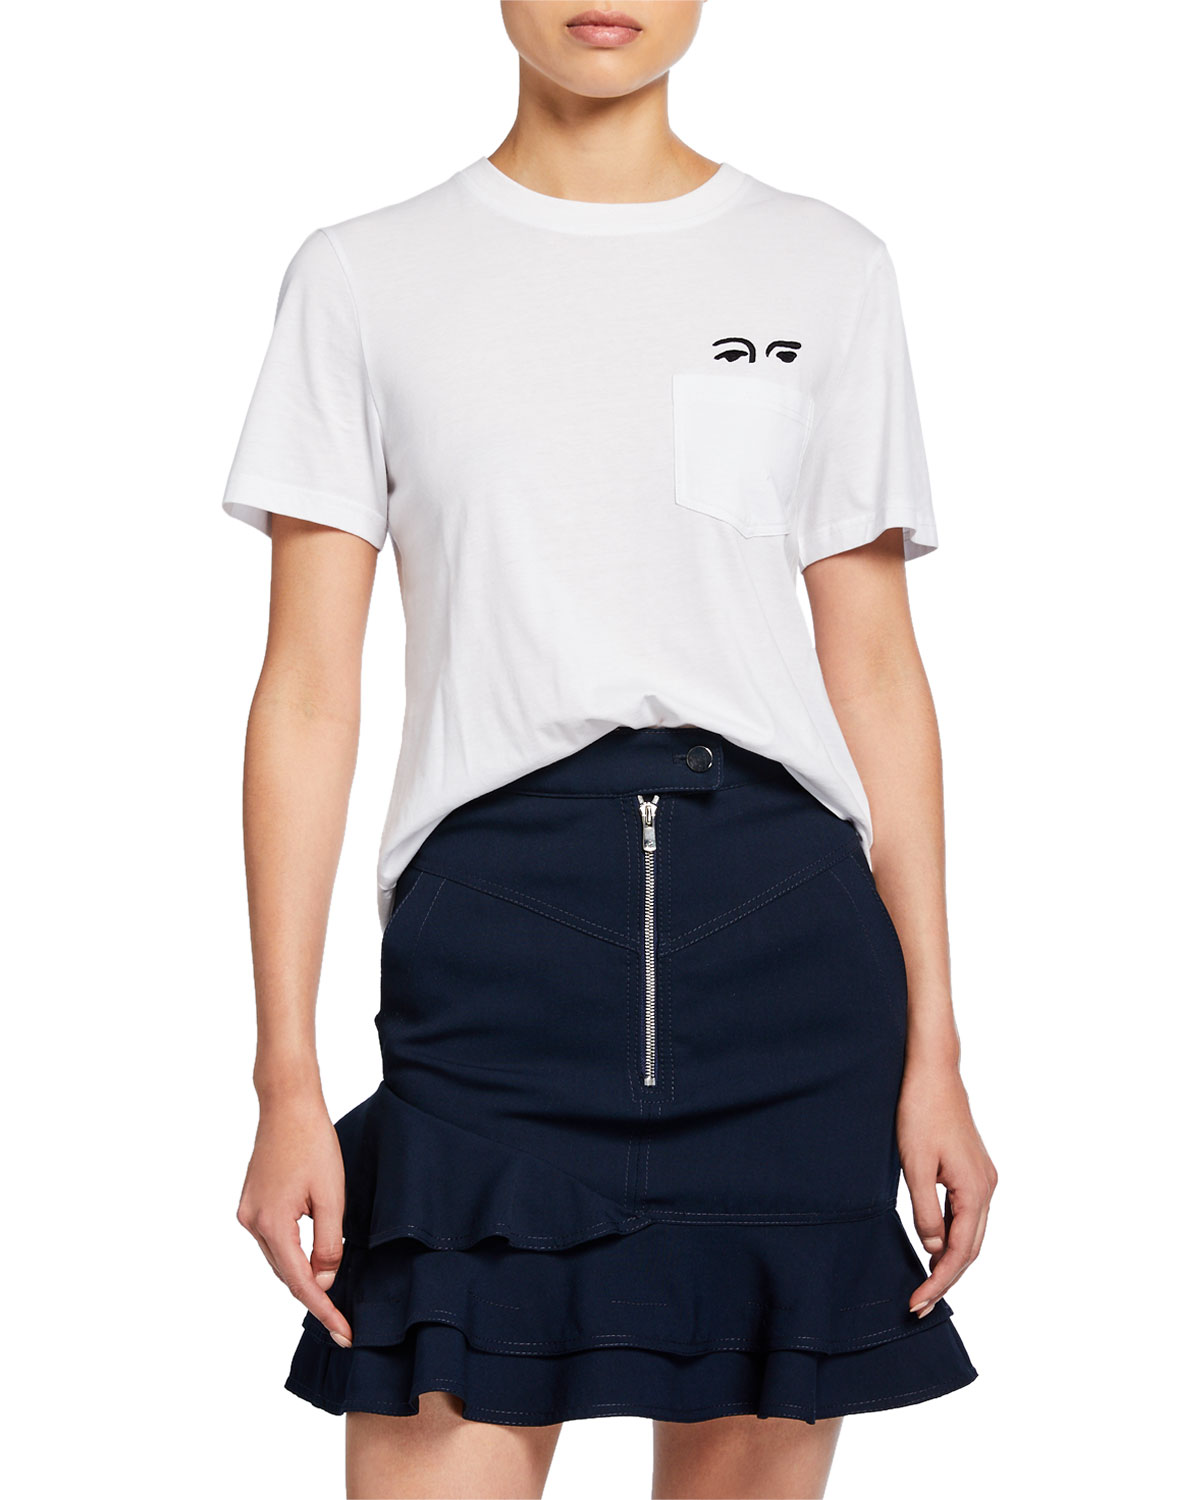 Short Sleeve Crewneck Tee With Eye Embroidery by Derek Lam 10 Crosby